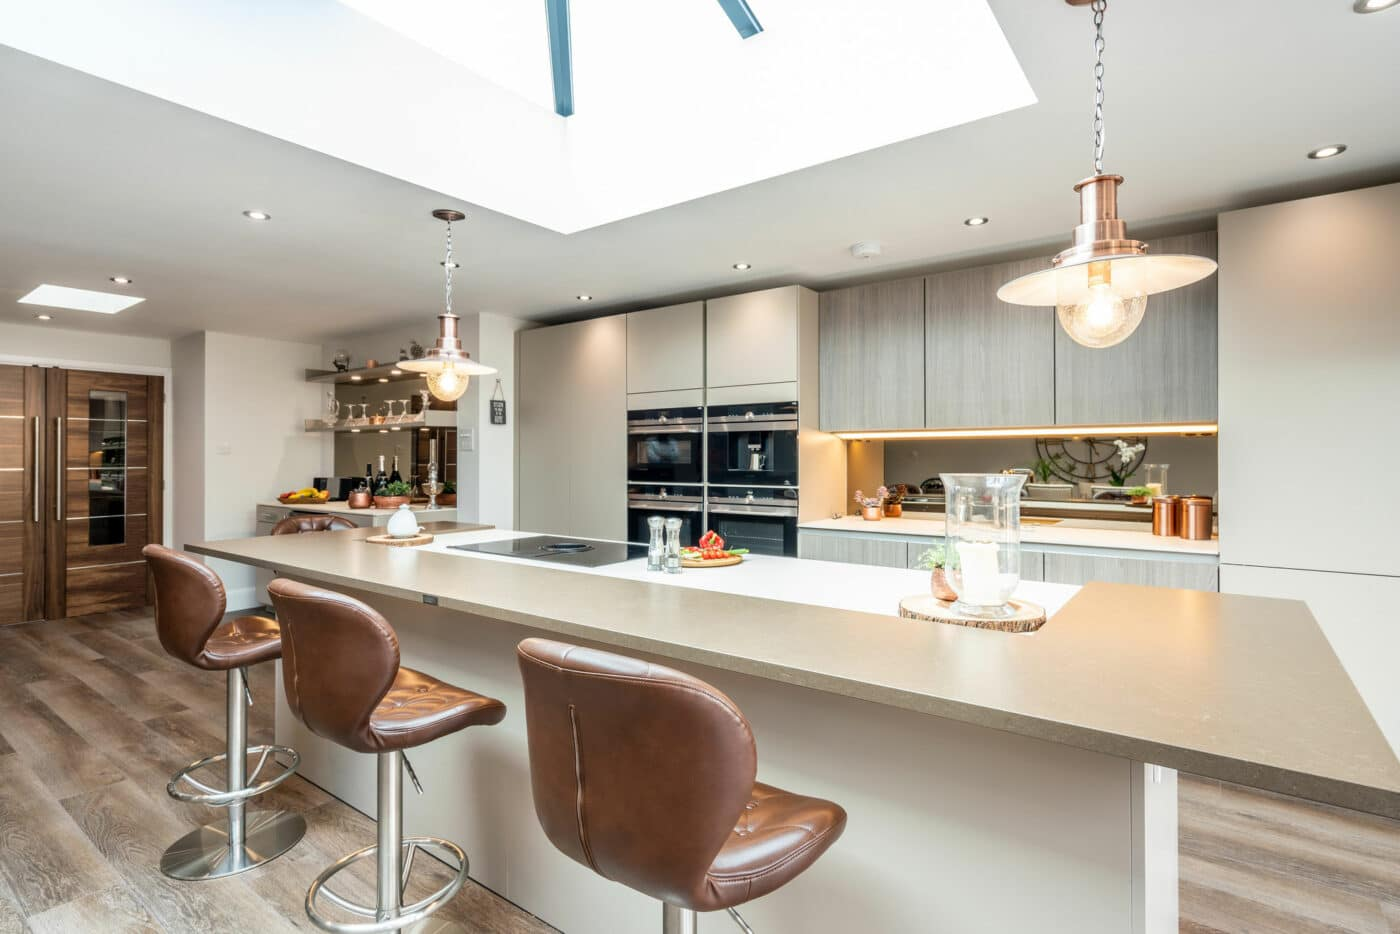 Image of Myers Touch Daniels Kitchen 01038 ZF 2442 14358 1 034 in Casa Cosentino - Cosentino